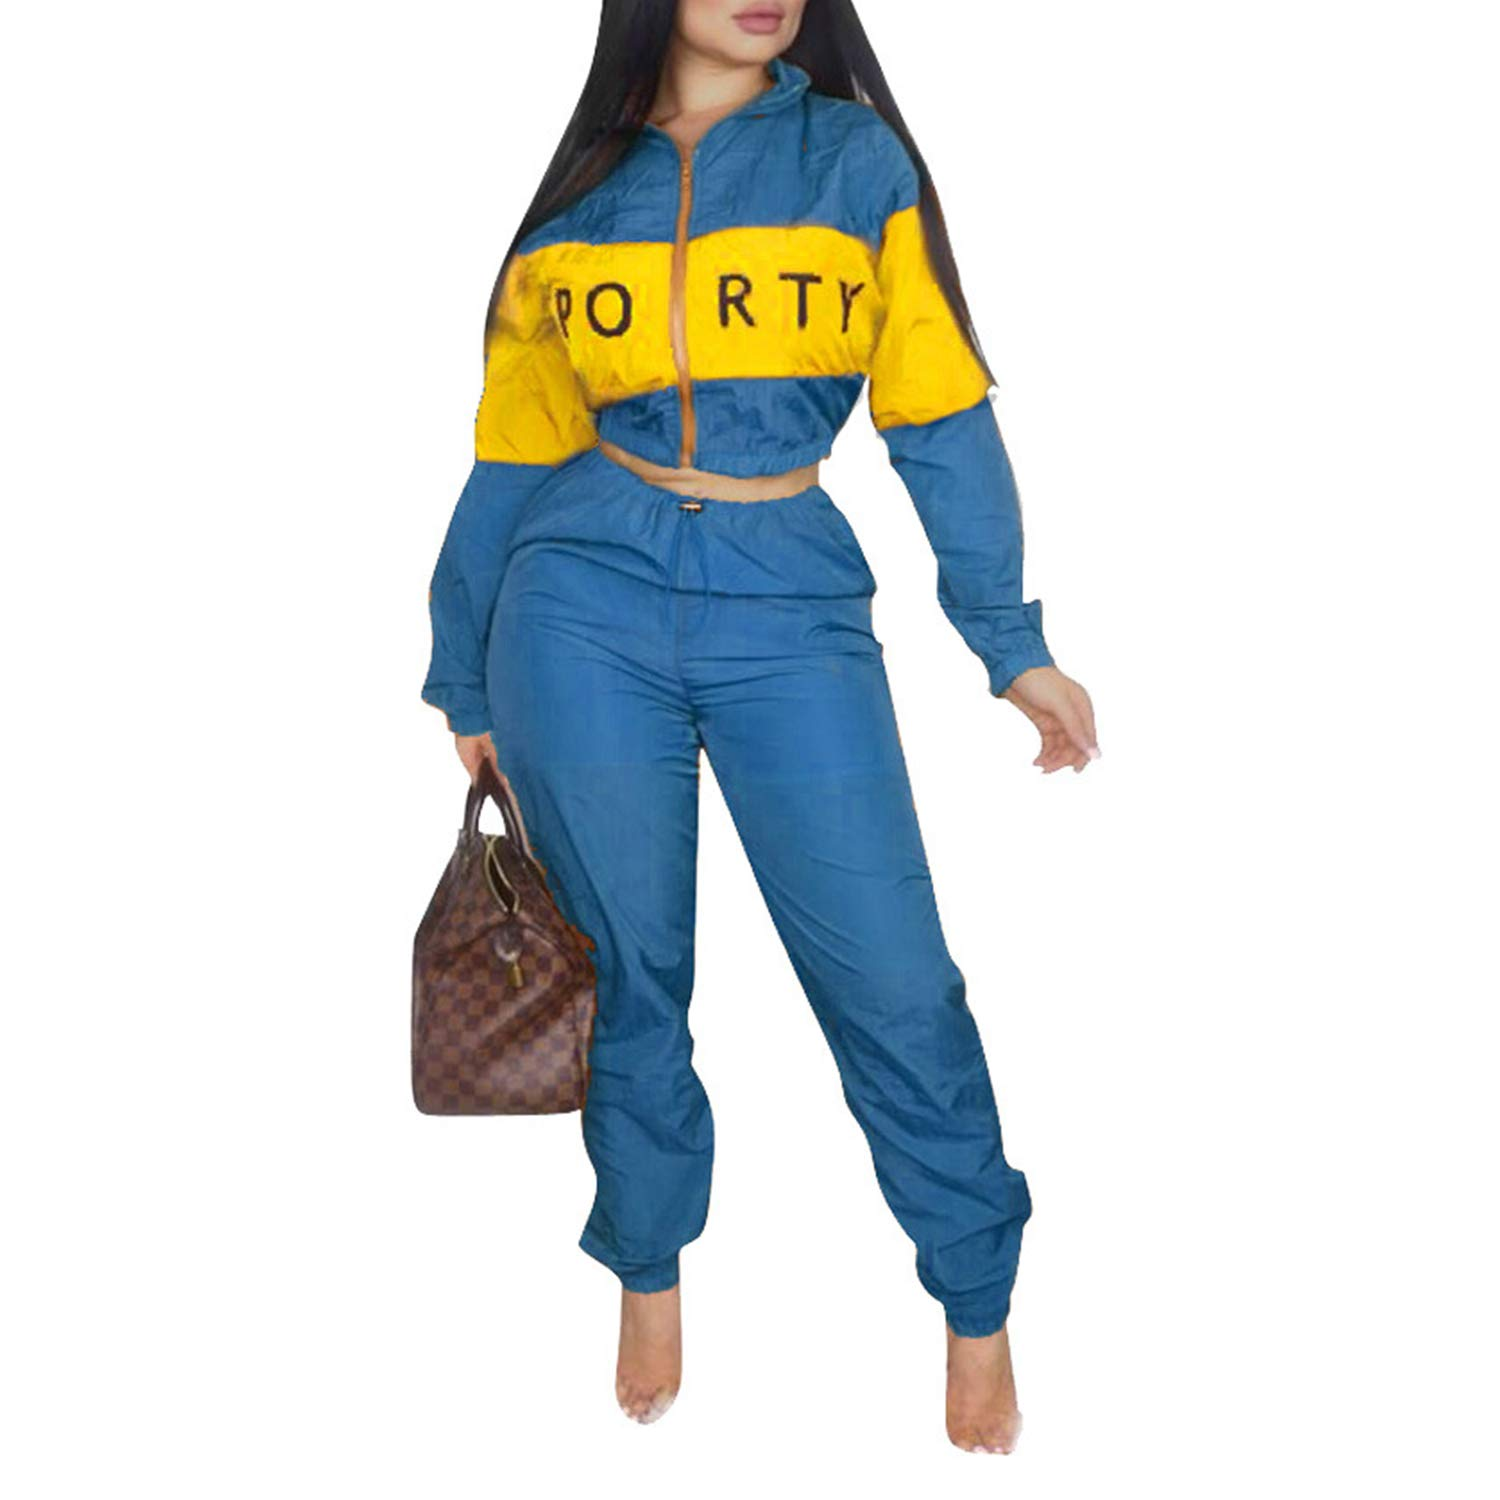 Casual Sweatsuit Crop Tops Long Sleeves Jacket High Waisted Pants Letter Blue XL by Sherro